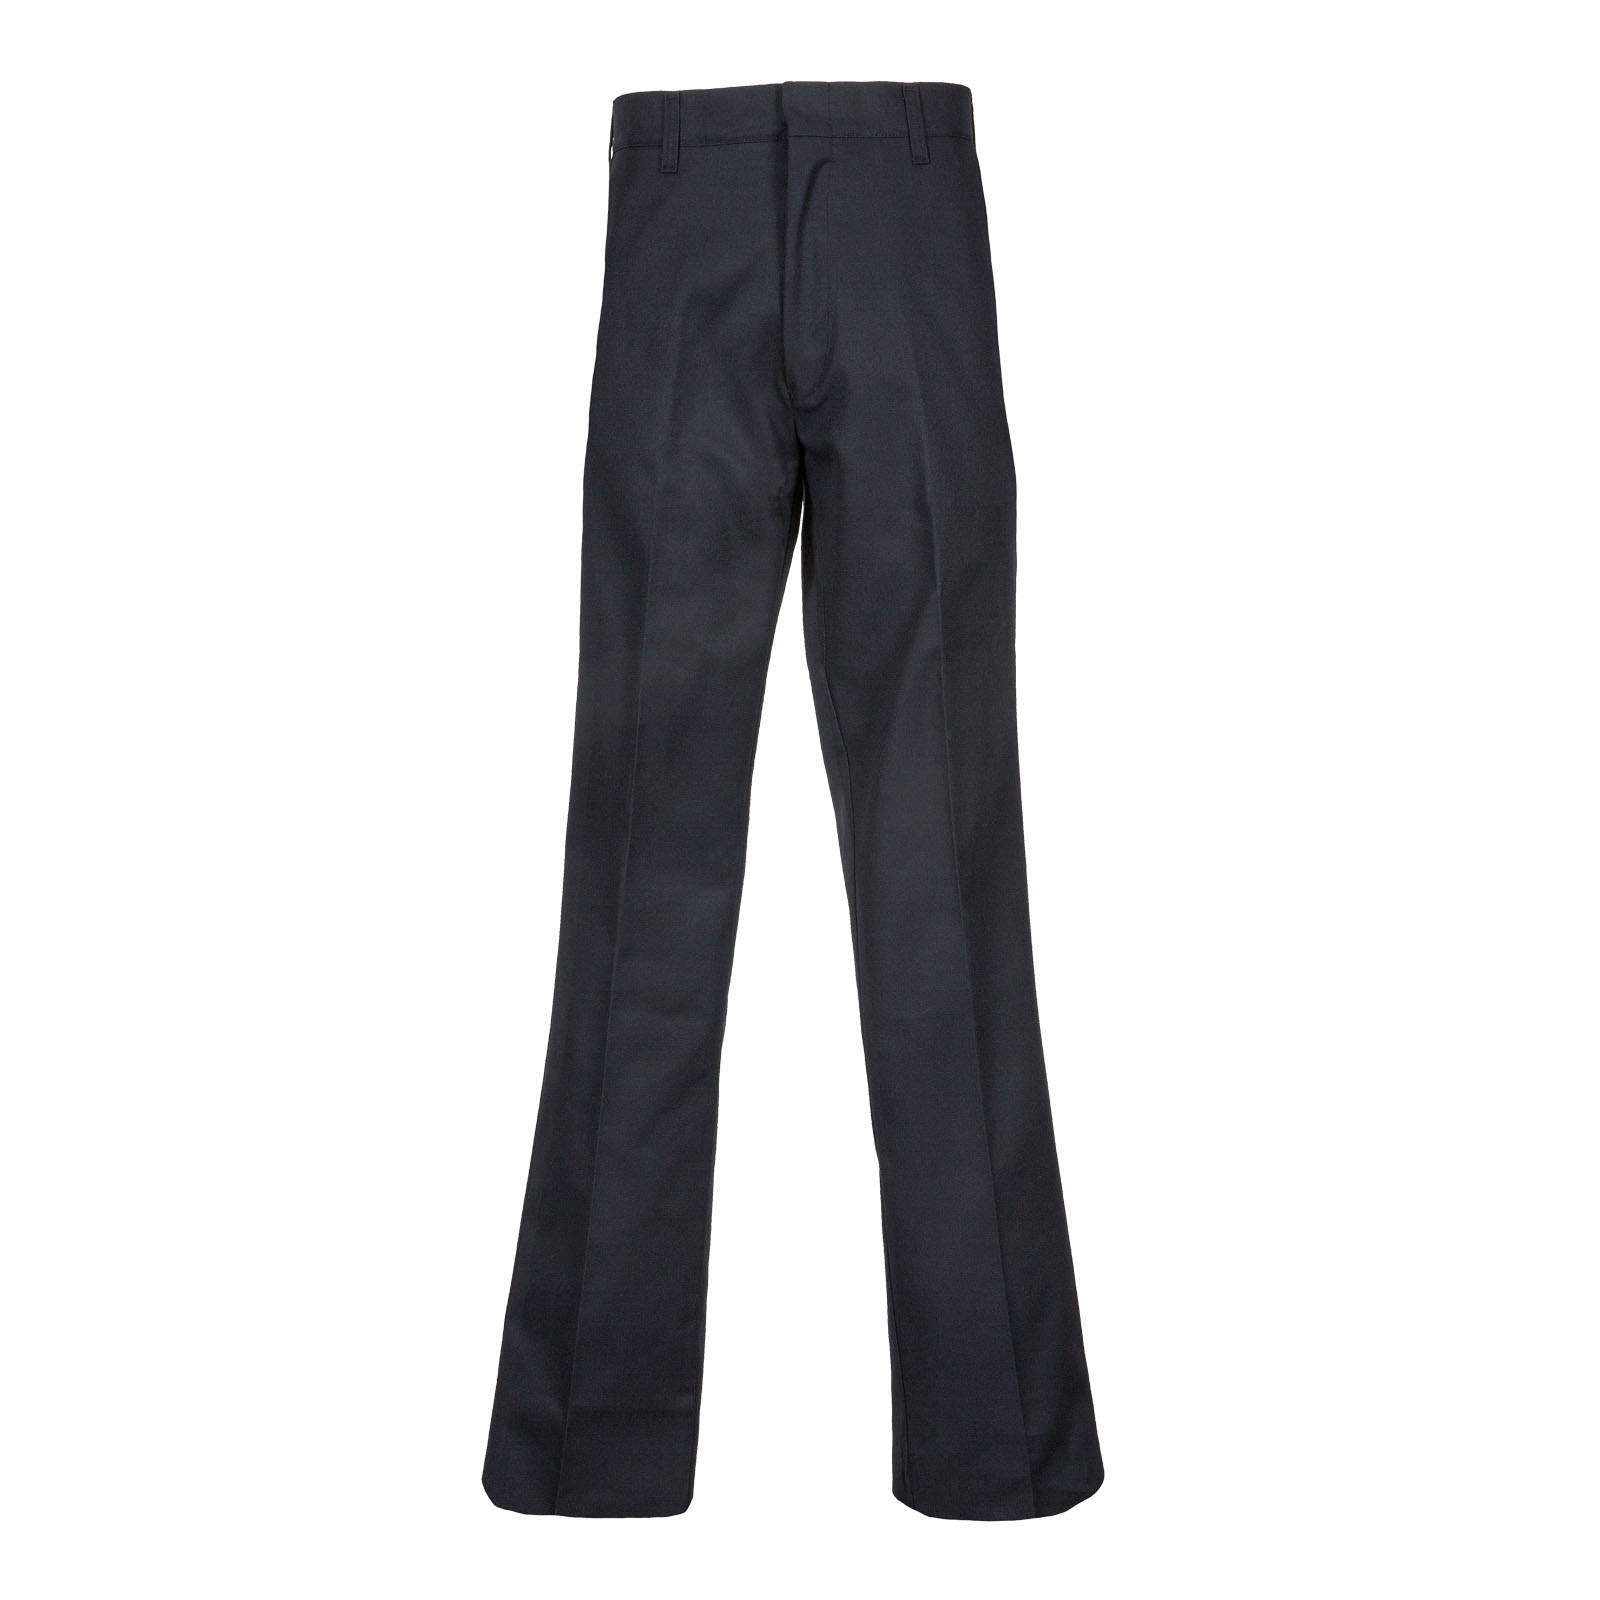 65/35 Comfort Twill Work Horse Uniform Pant-